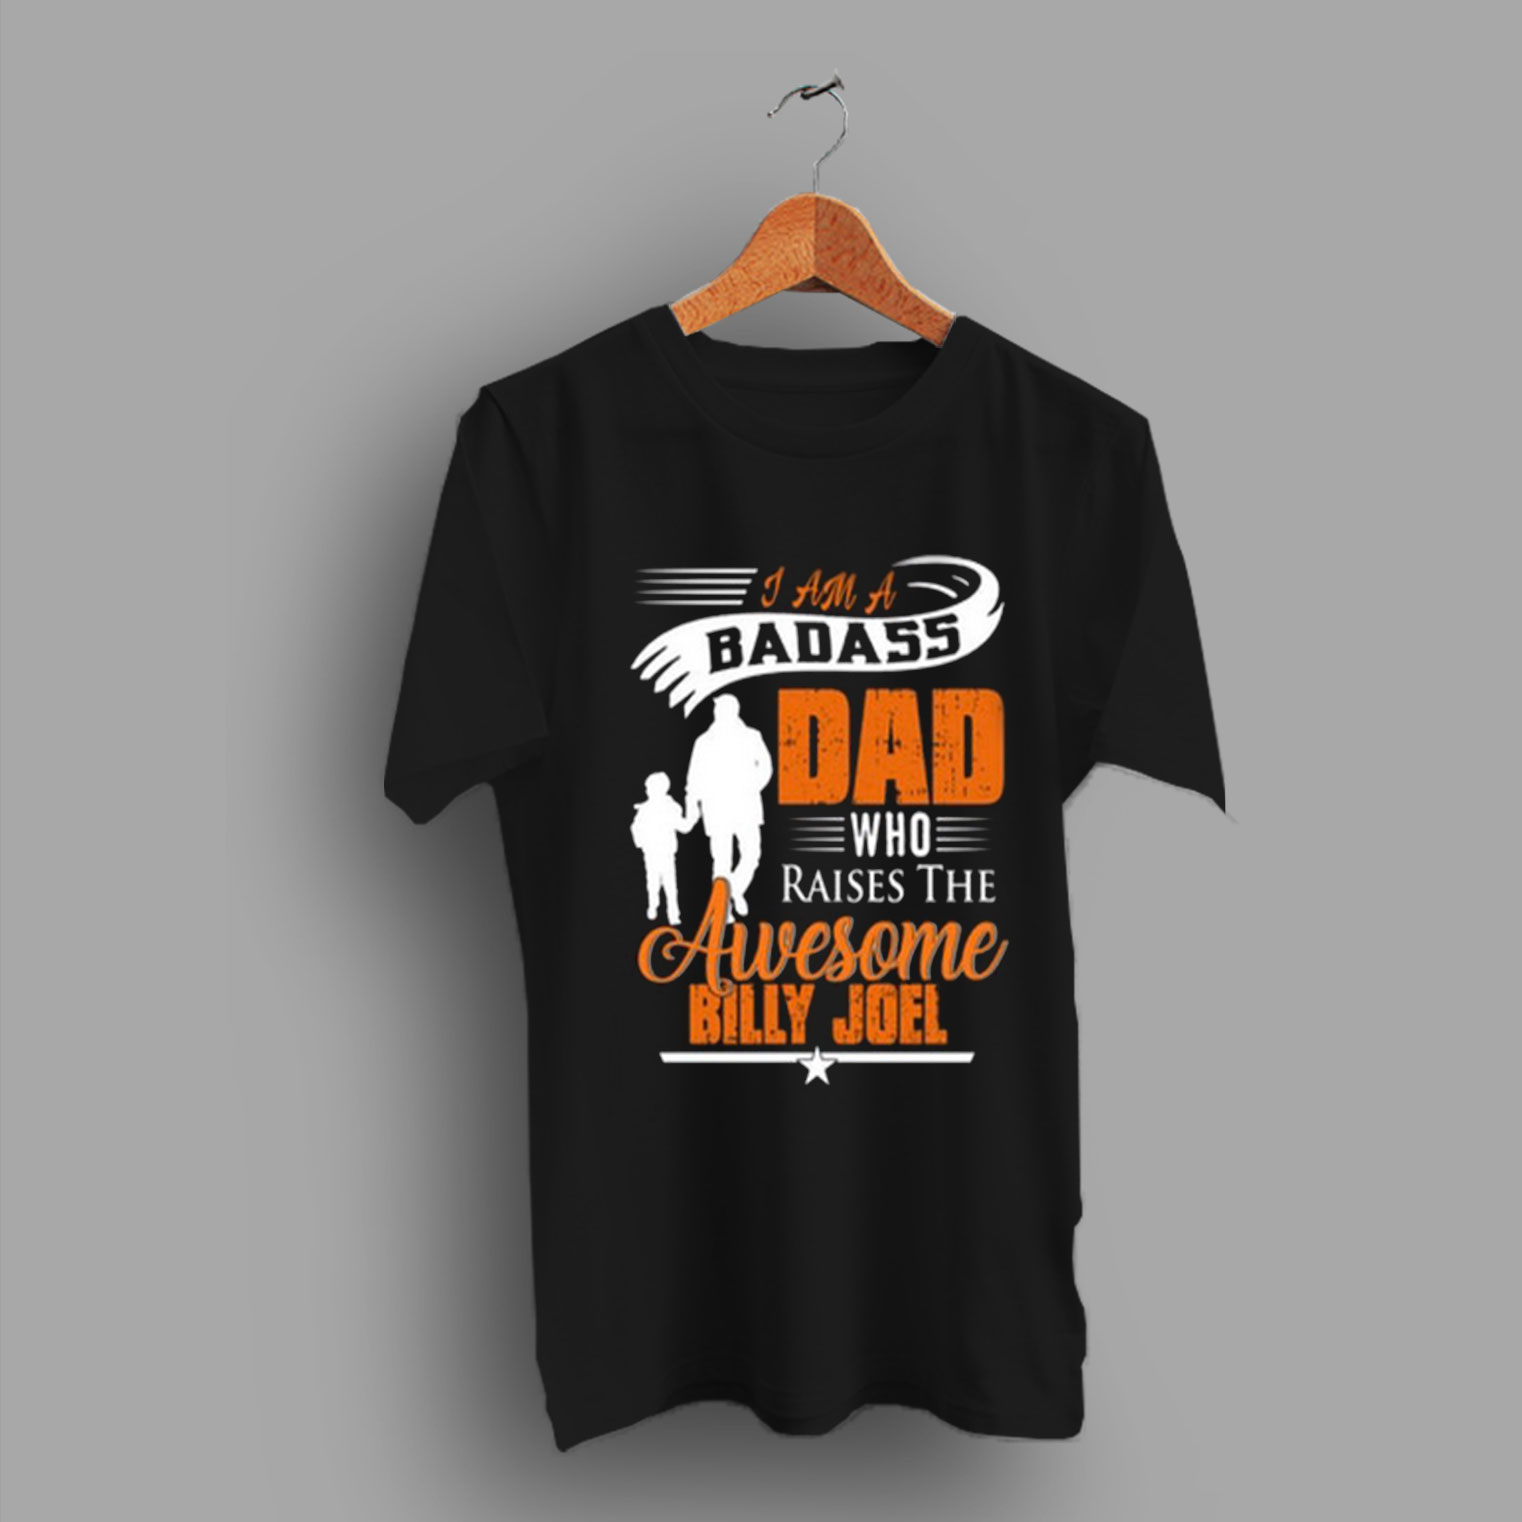 386f7a2a His Good Friend I Badass Dad Who Raises The Awesome Billie Joel T Shirt